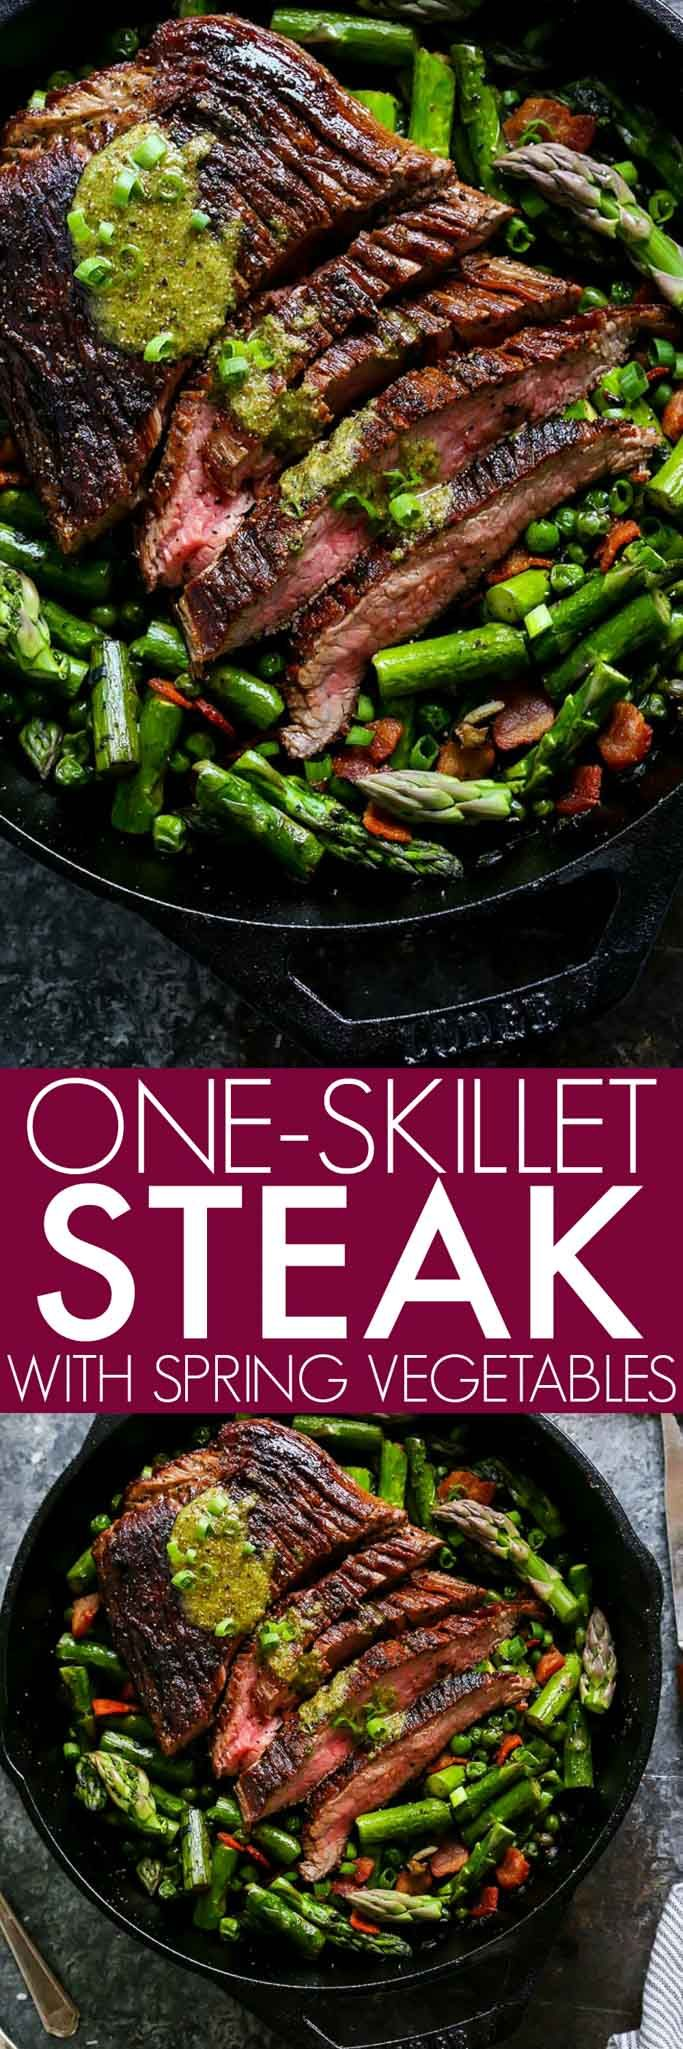 This One-Skillet Steak and Spring Vegetables with Mint Mustard Sauce is an elegant dinner that's easy enough for weekday